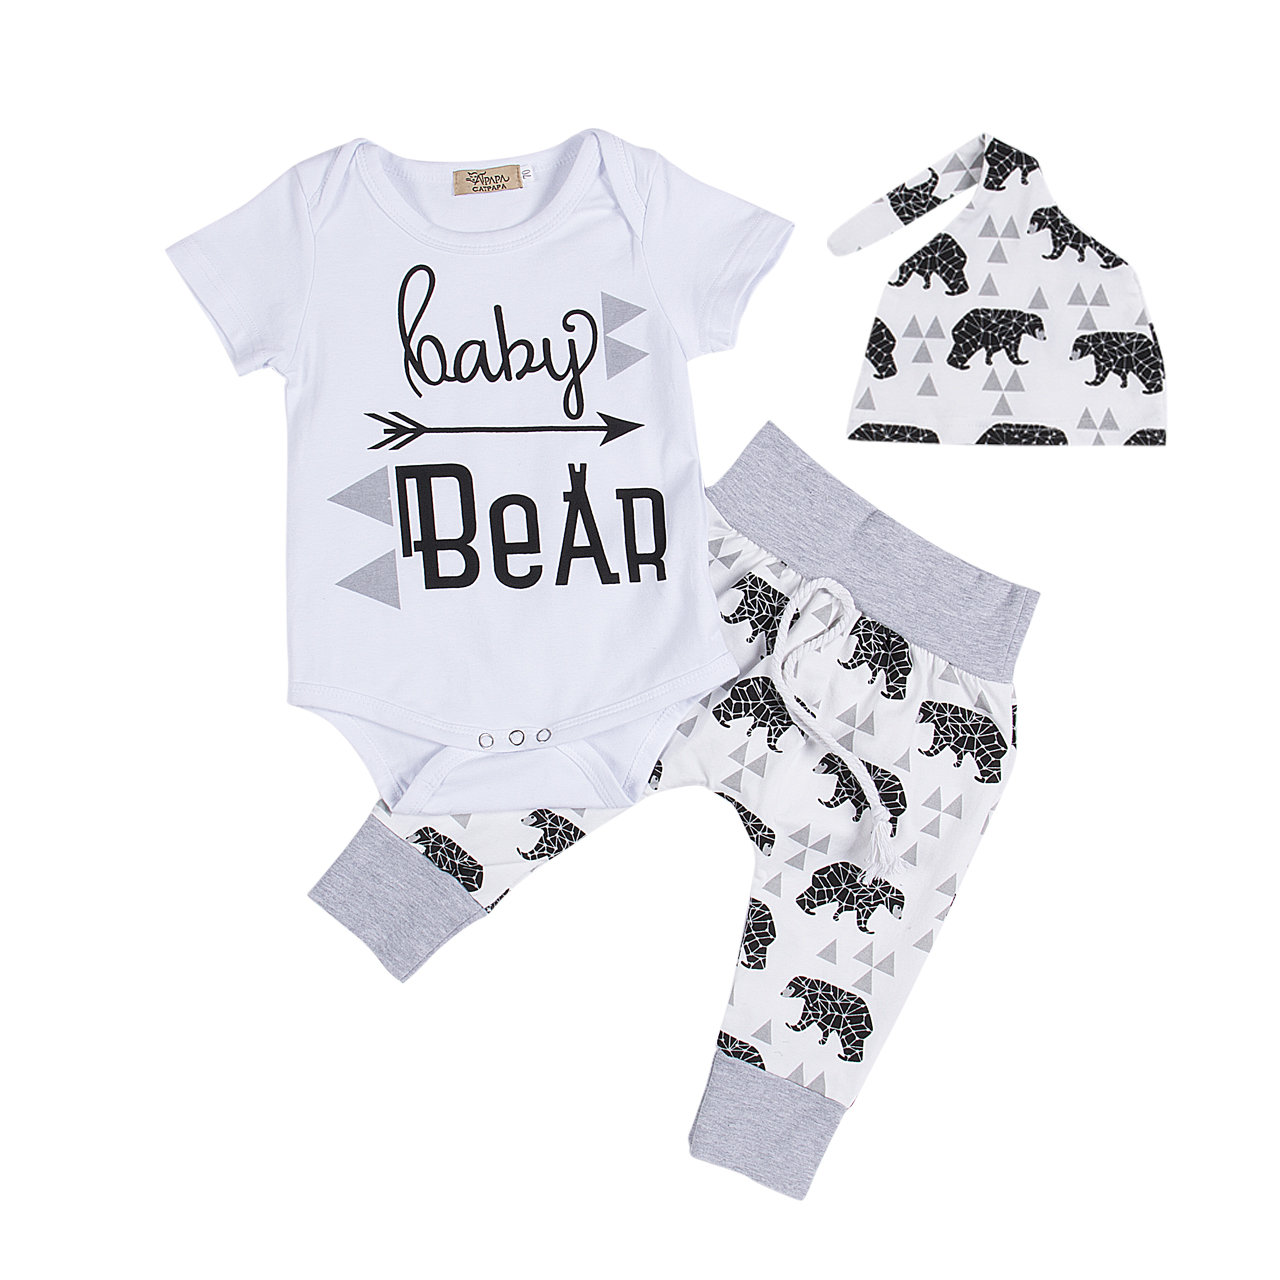 befe794c3c5c 3PCS Set Newborn Infant Baby Clothes Short Sleeve Baby Bear Boys ...